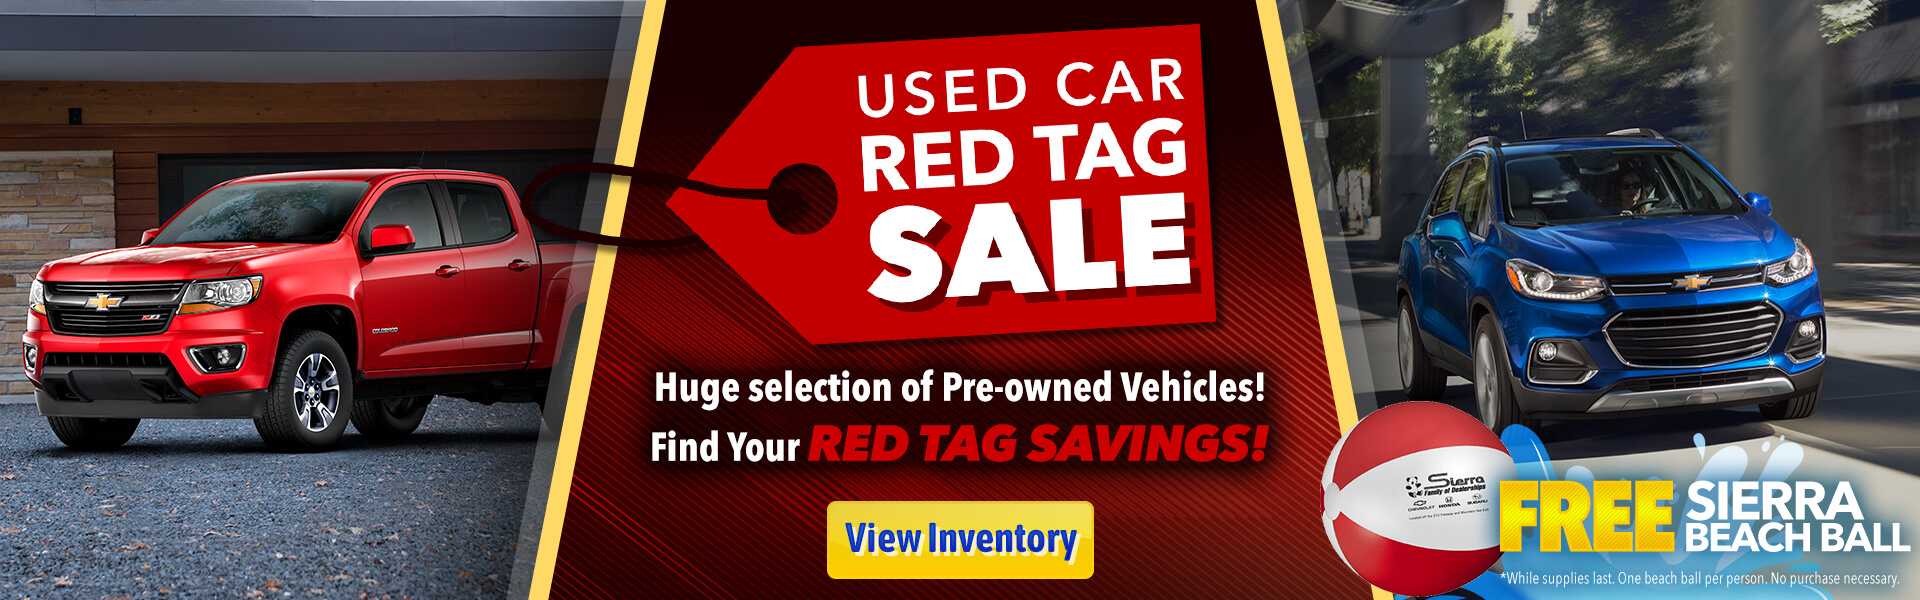 Used Car Red Tag